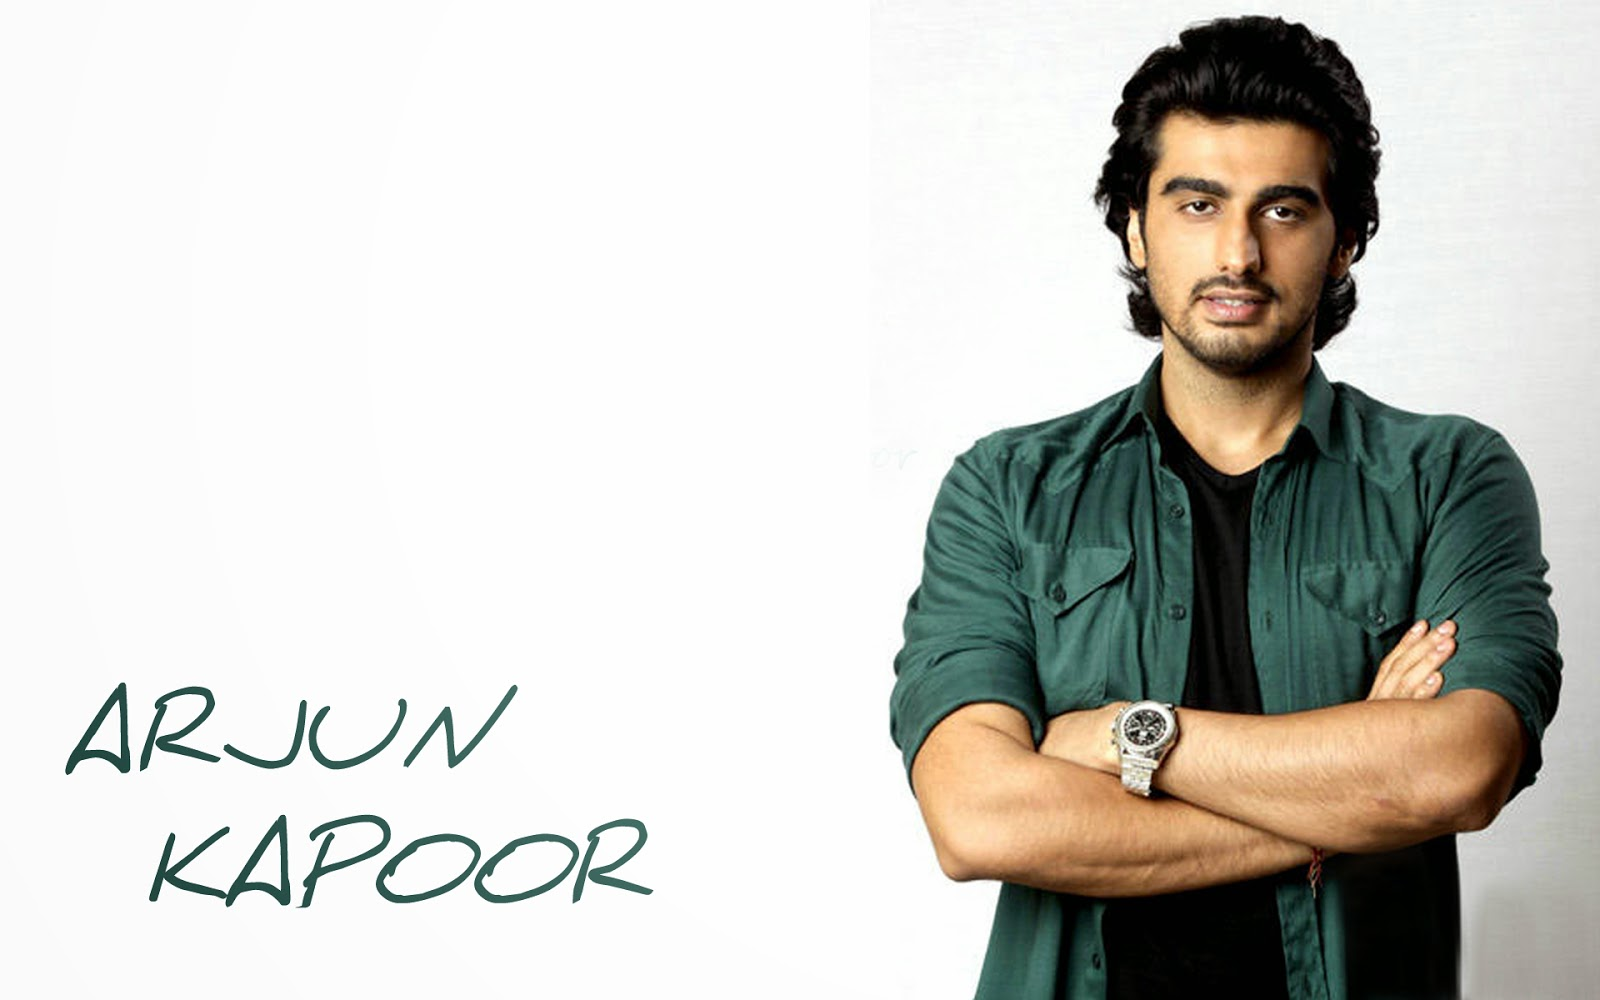 Arjun Kapoor Wallpapers High Resolution and Quality Download 1600x1000